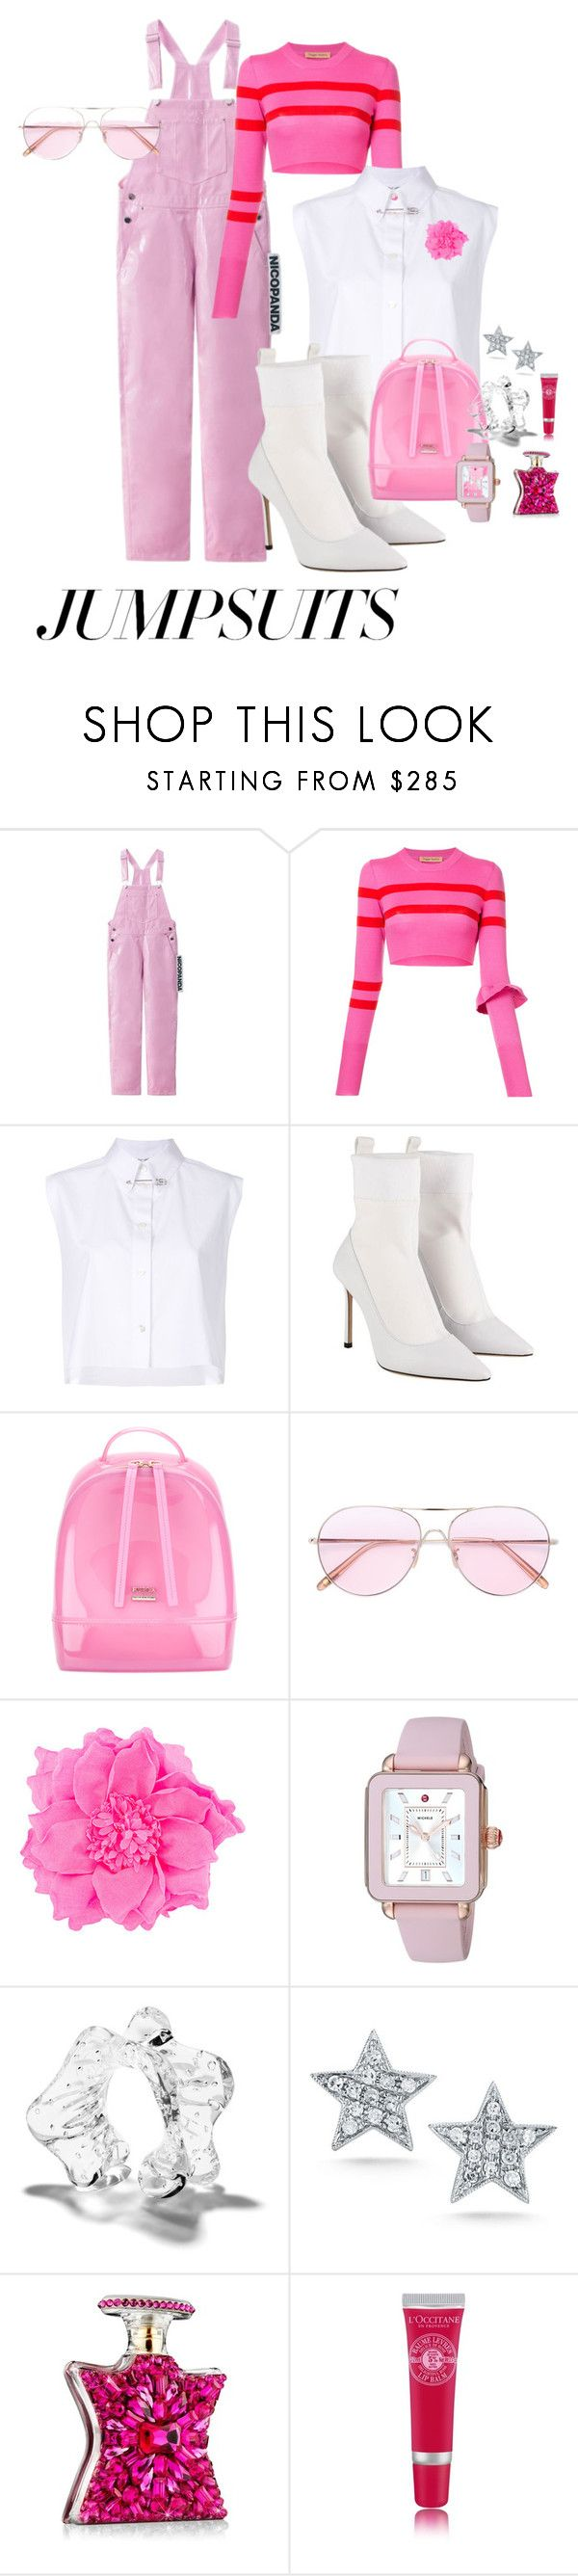 """jumpsuits"" by redbone1961114 on Polyvore featuring Maggie Marilyn, Helmut Lang, Jimmy Choo, Furla, Oliver Peoples, Nude, Michele, Proenza Schouler, JULIANNE and Bond No. 9"